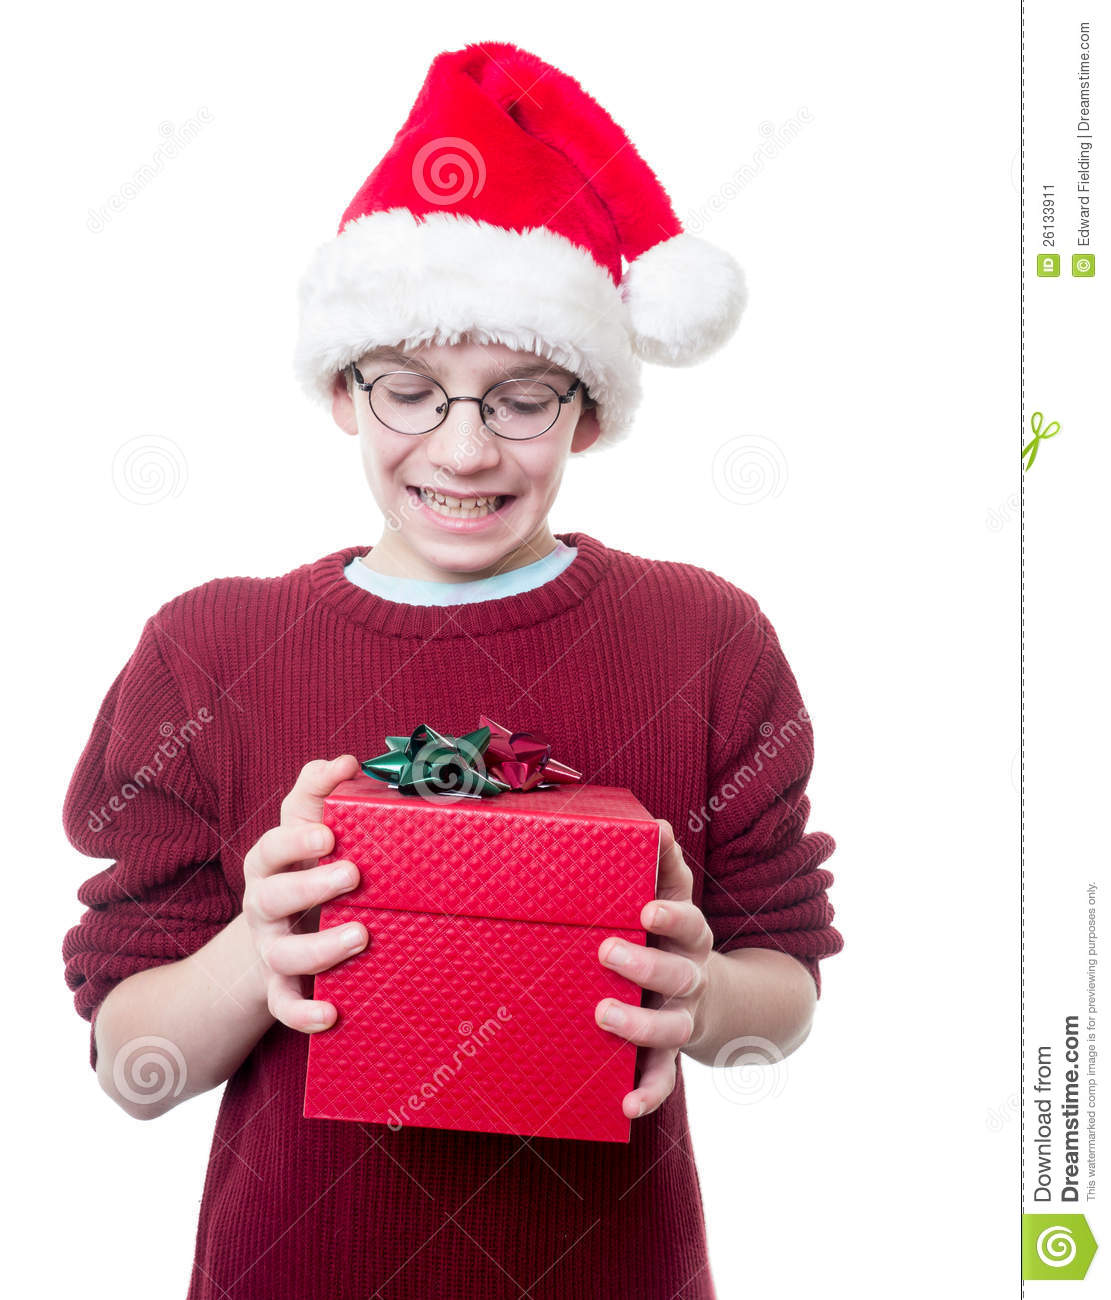 Teen Boy Christmas.Teen Boy With Christmas Hat And Present Stock Image Image